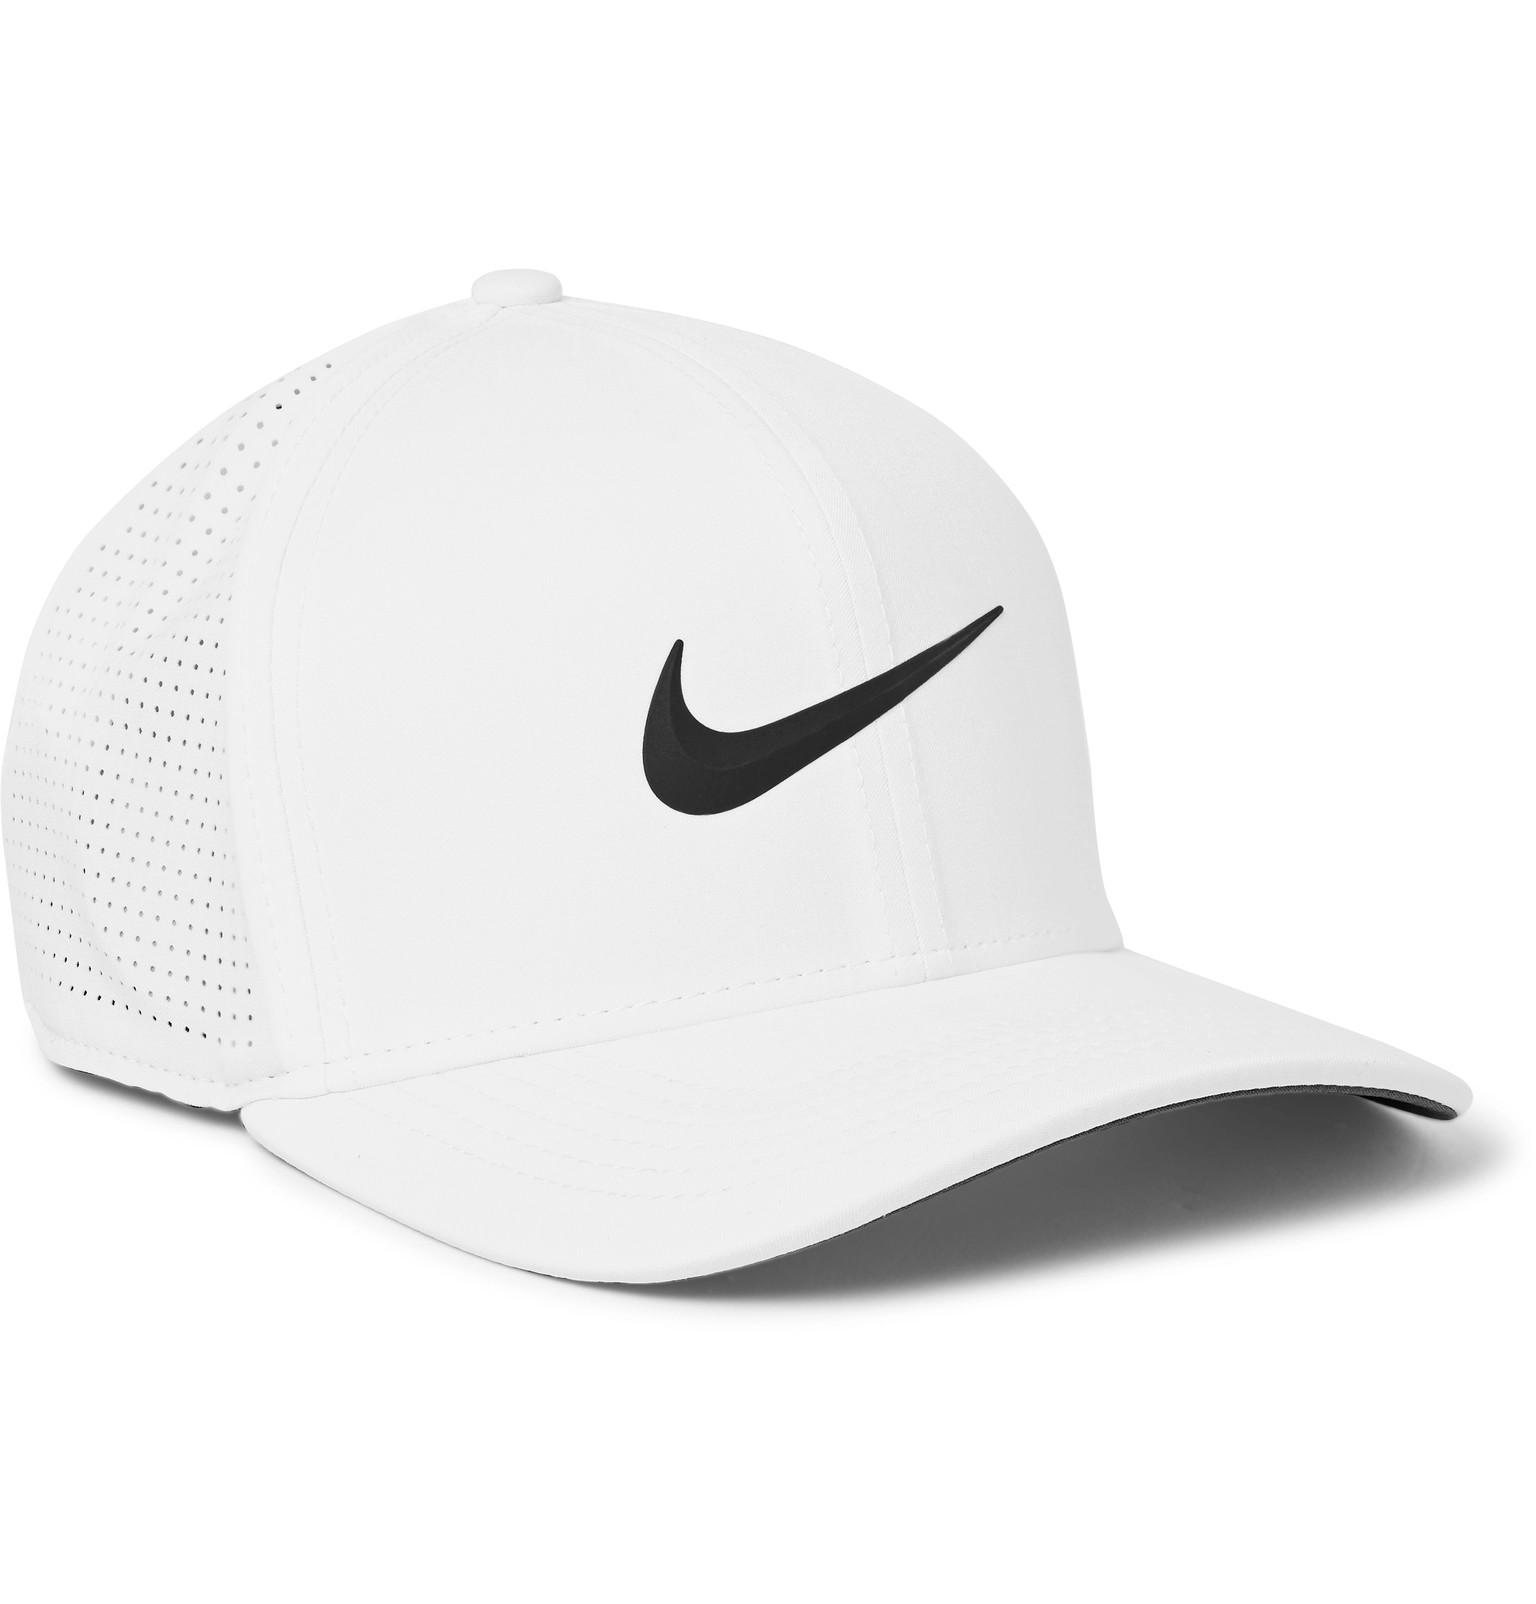 bf1cf000c3b Nike Aerobill Classic 99 Perforated Dri-fit Golf Cap in White for ...